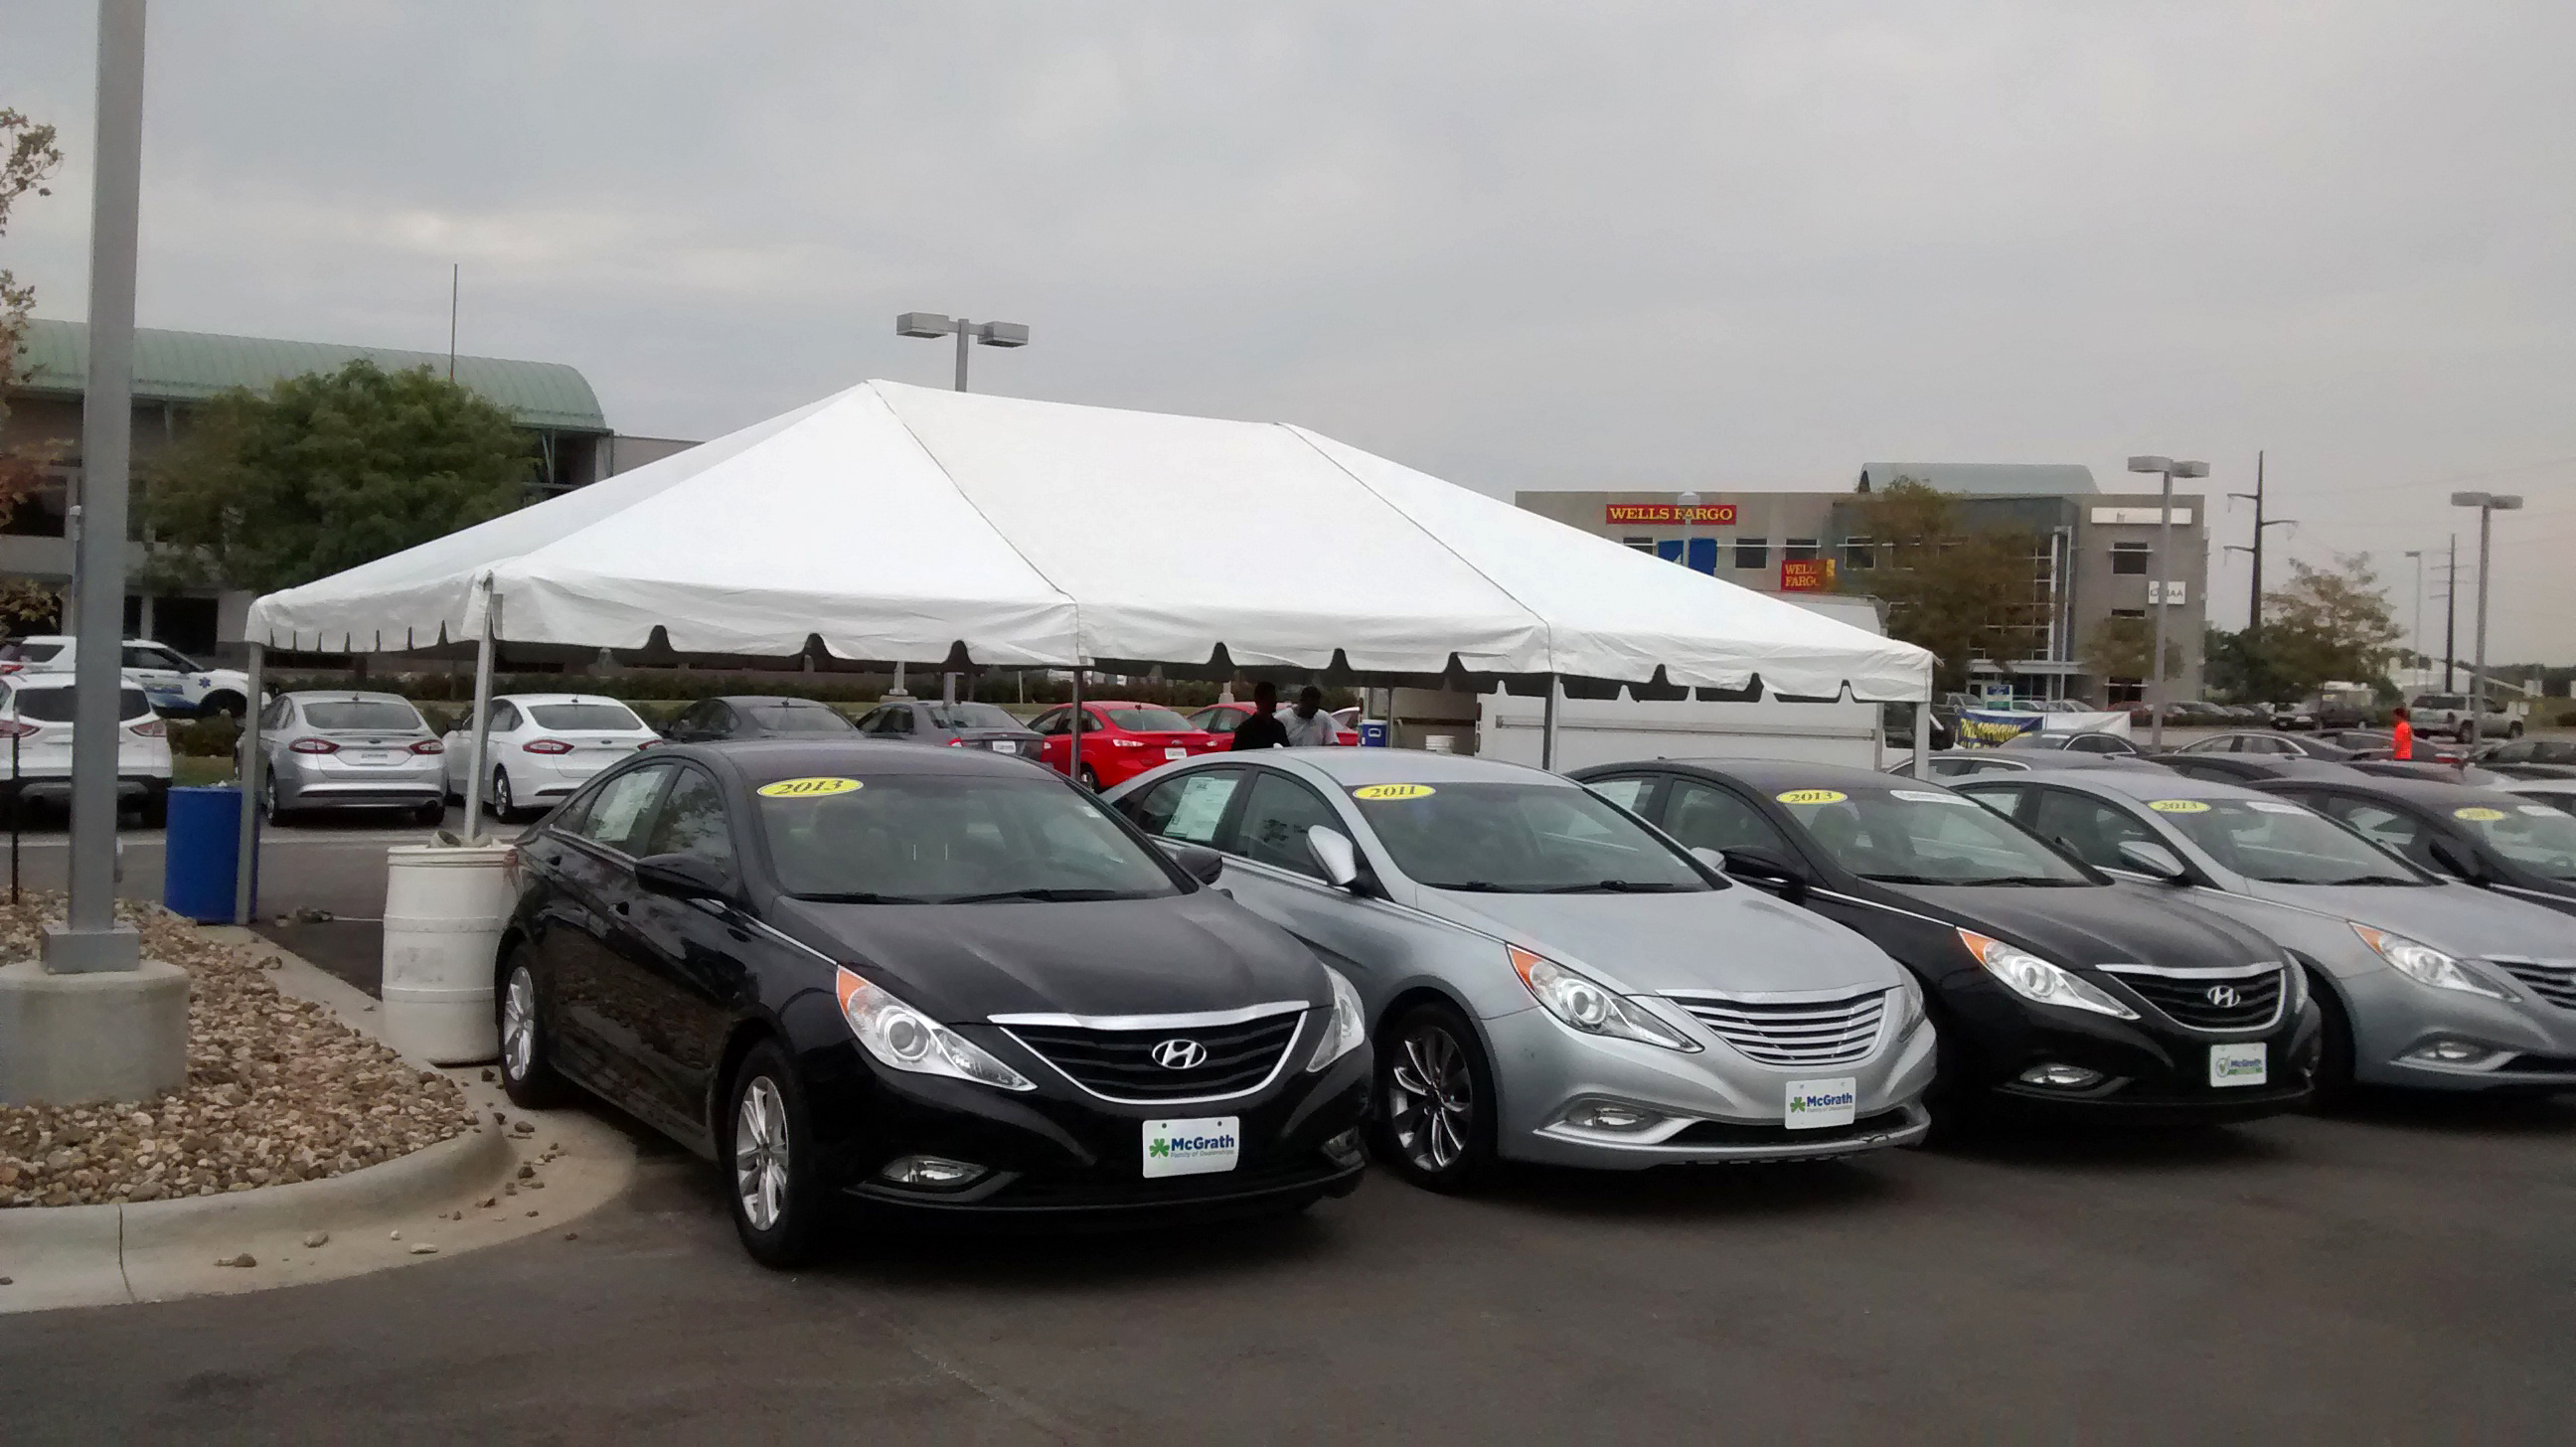 20′ x 30′ frame tent for the grand re opening at coralville used car superstore